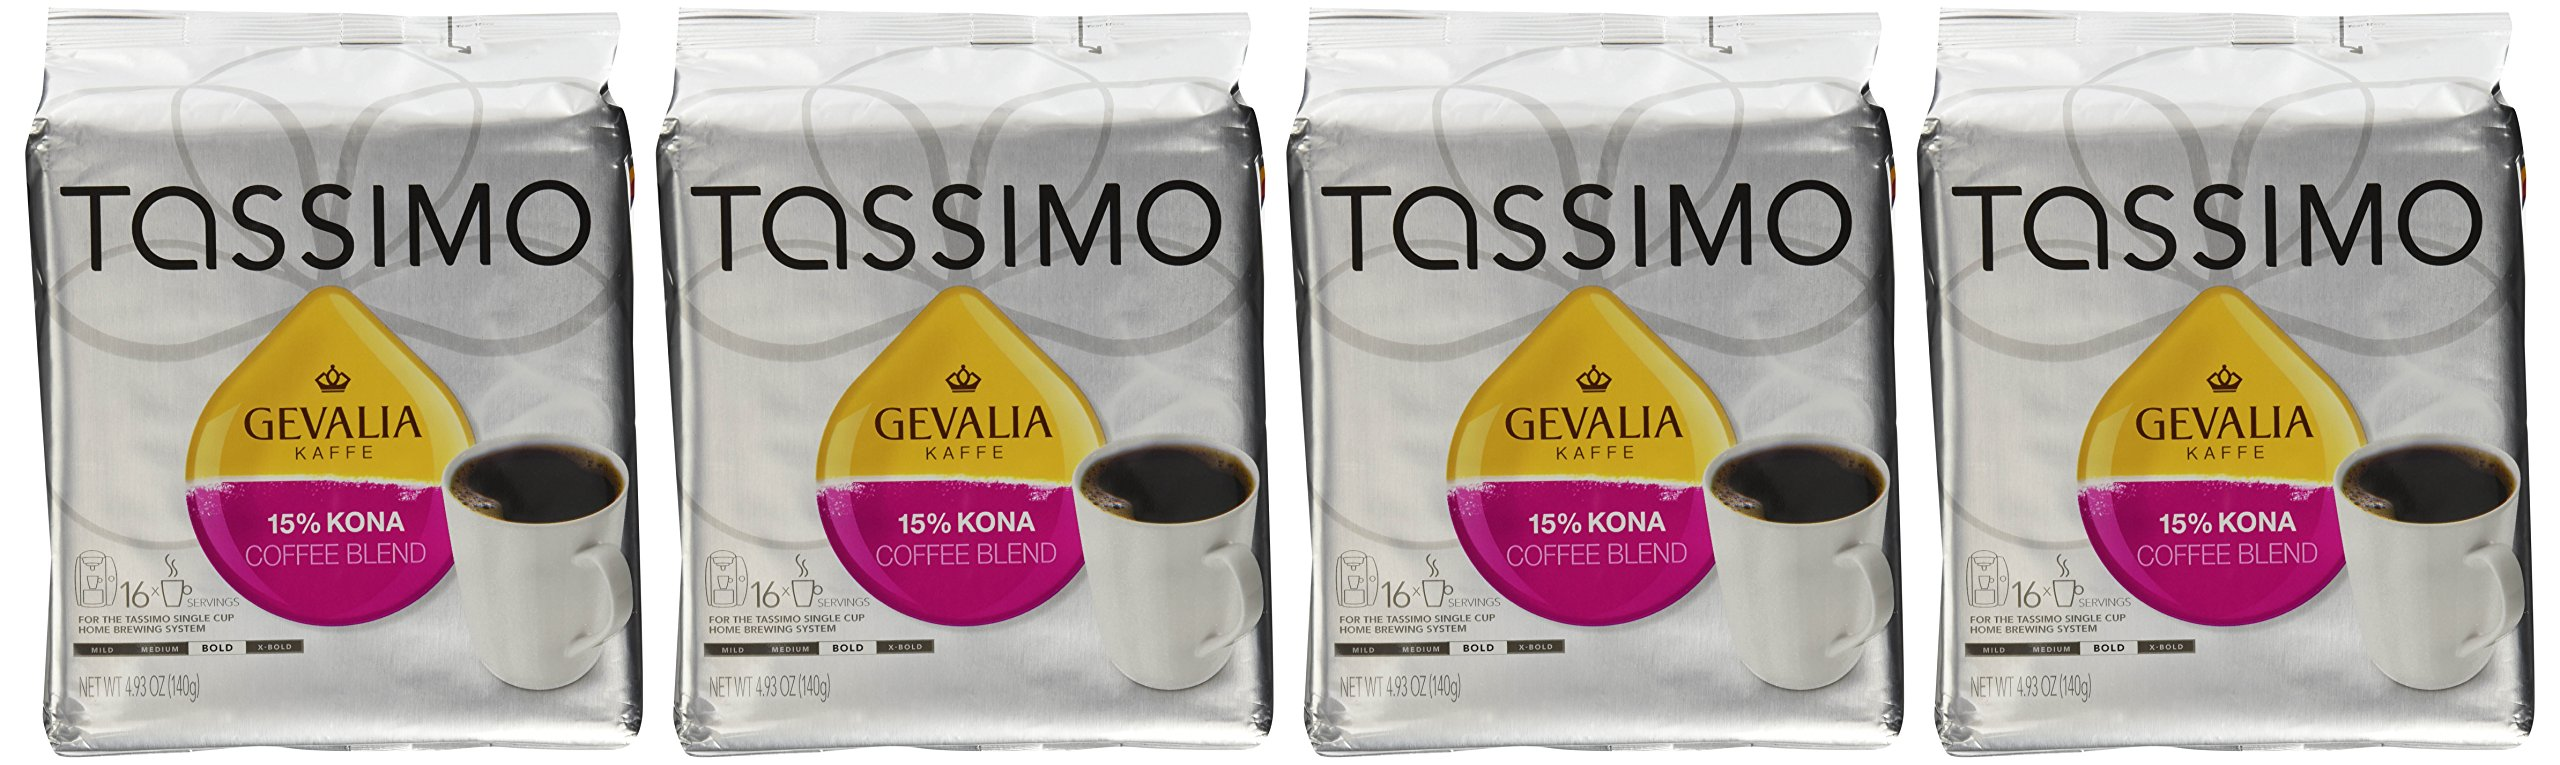 Gevalia Kaffe 15% Kona Blend Coffee (Pack of 4)